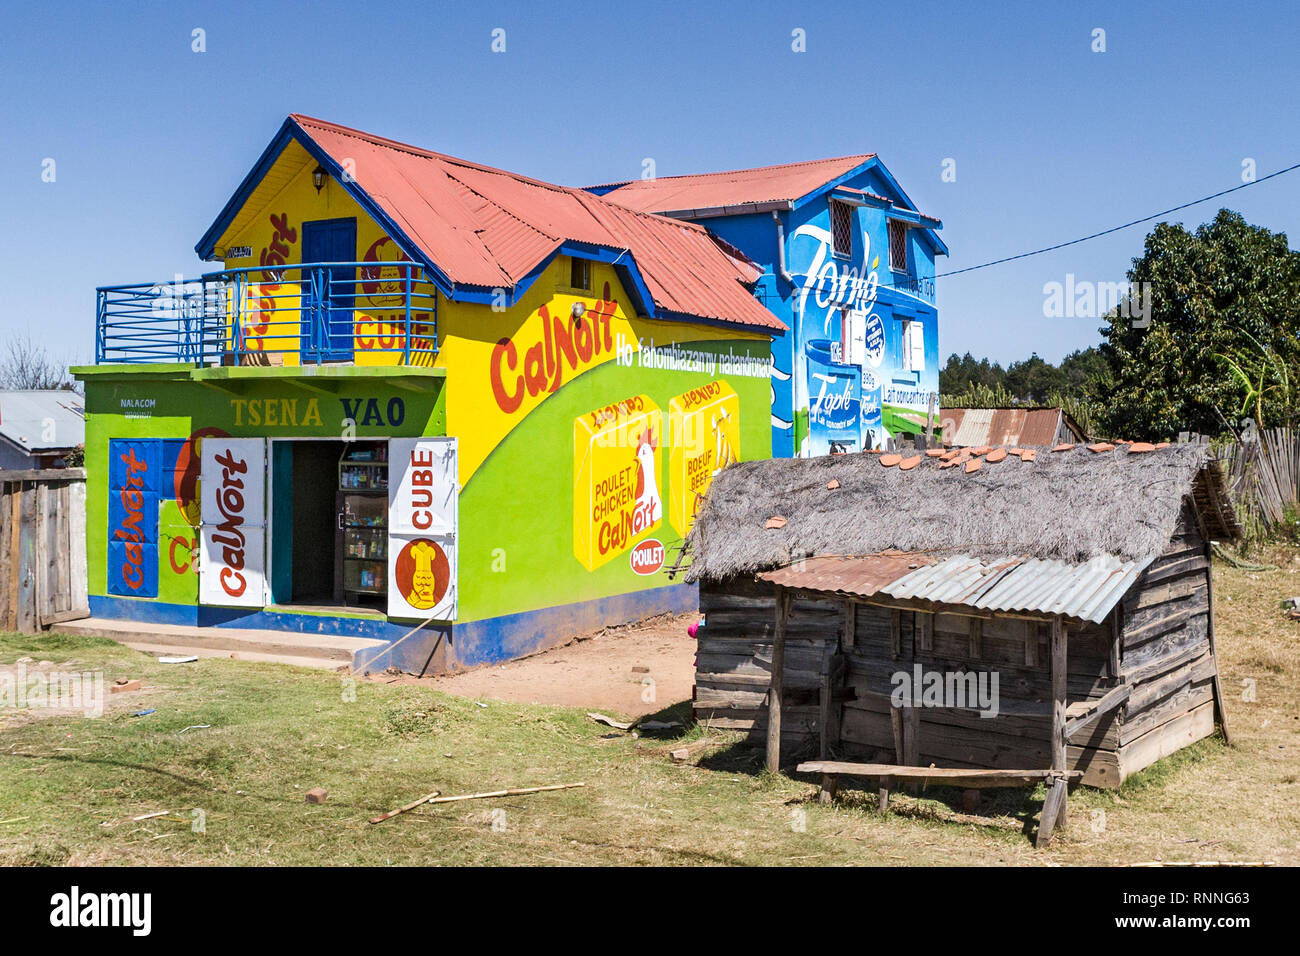 Views  along N7 road from Antsirtabe to Ranomafana National Park Madagascar - houses used to advertise - Calnort stock cubes & Tople Condensed Milk - Stock Image